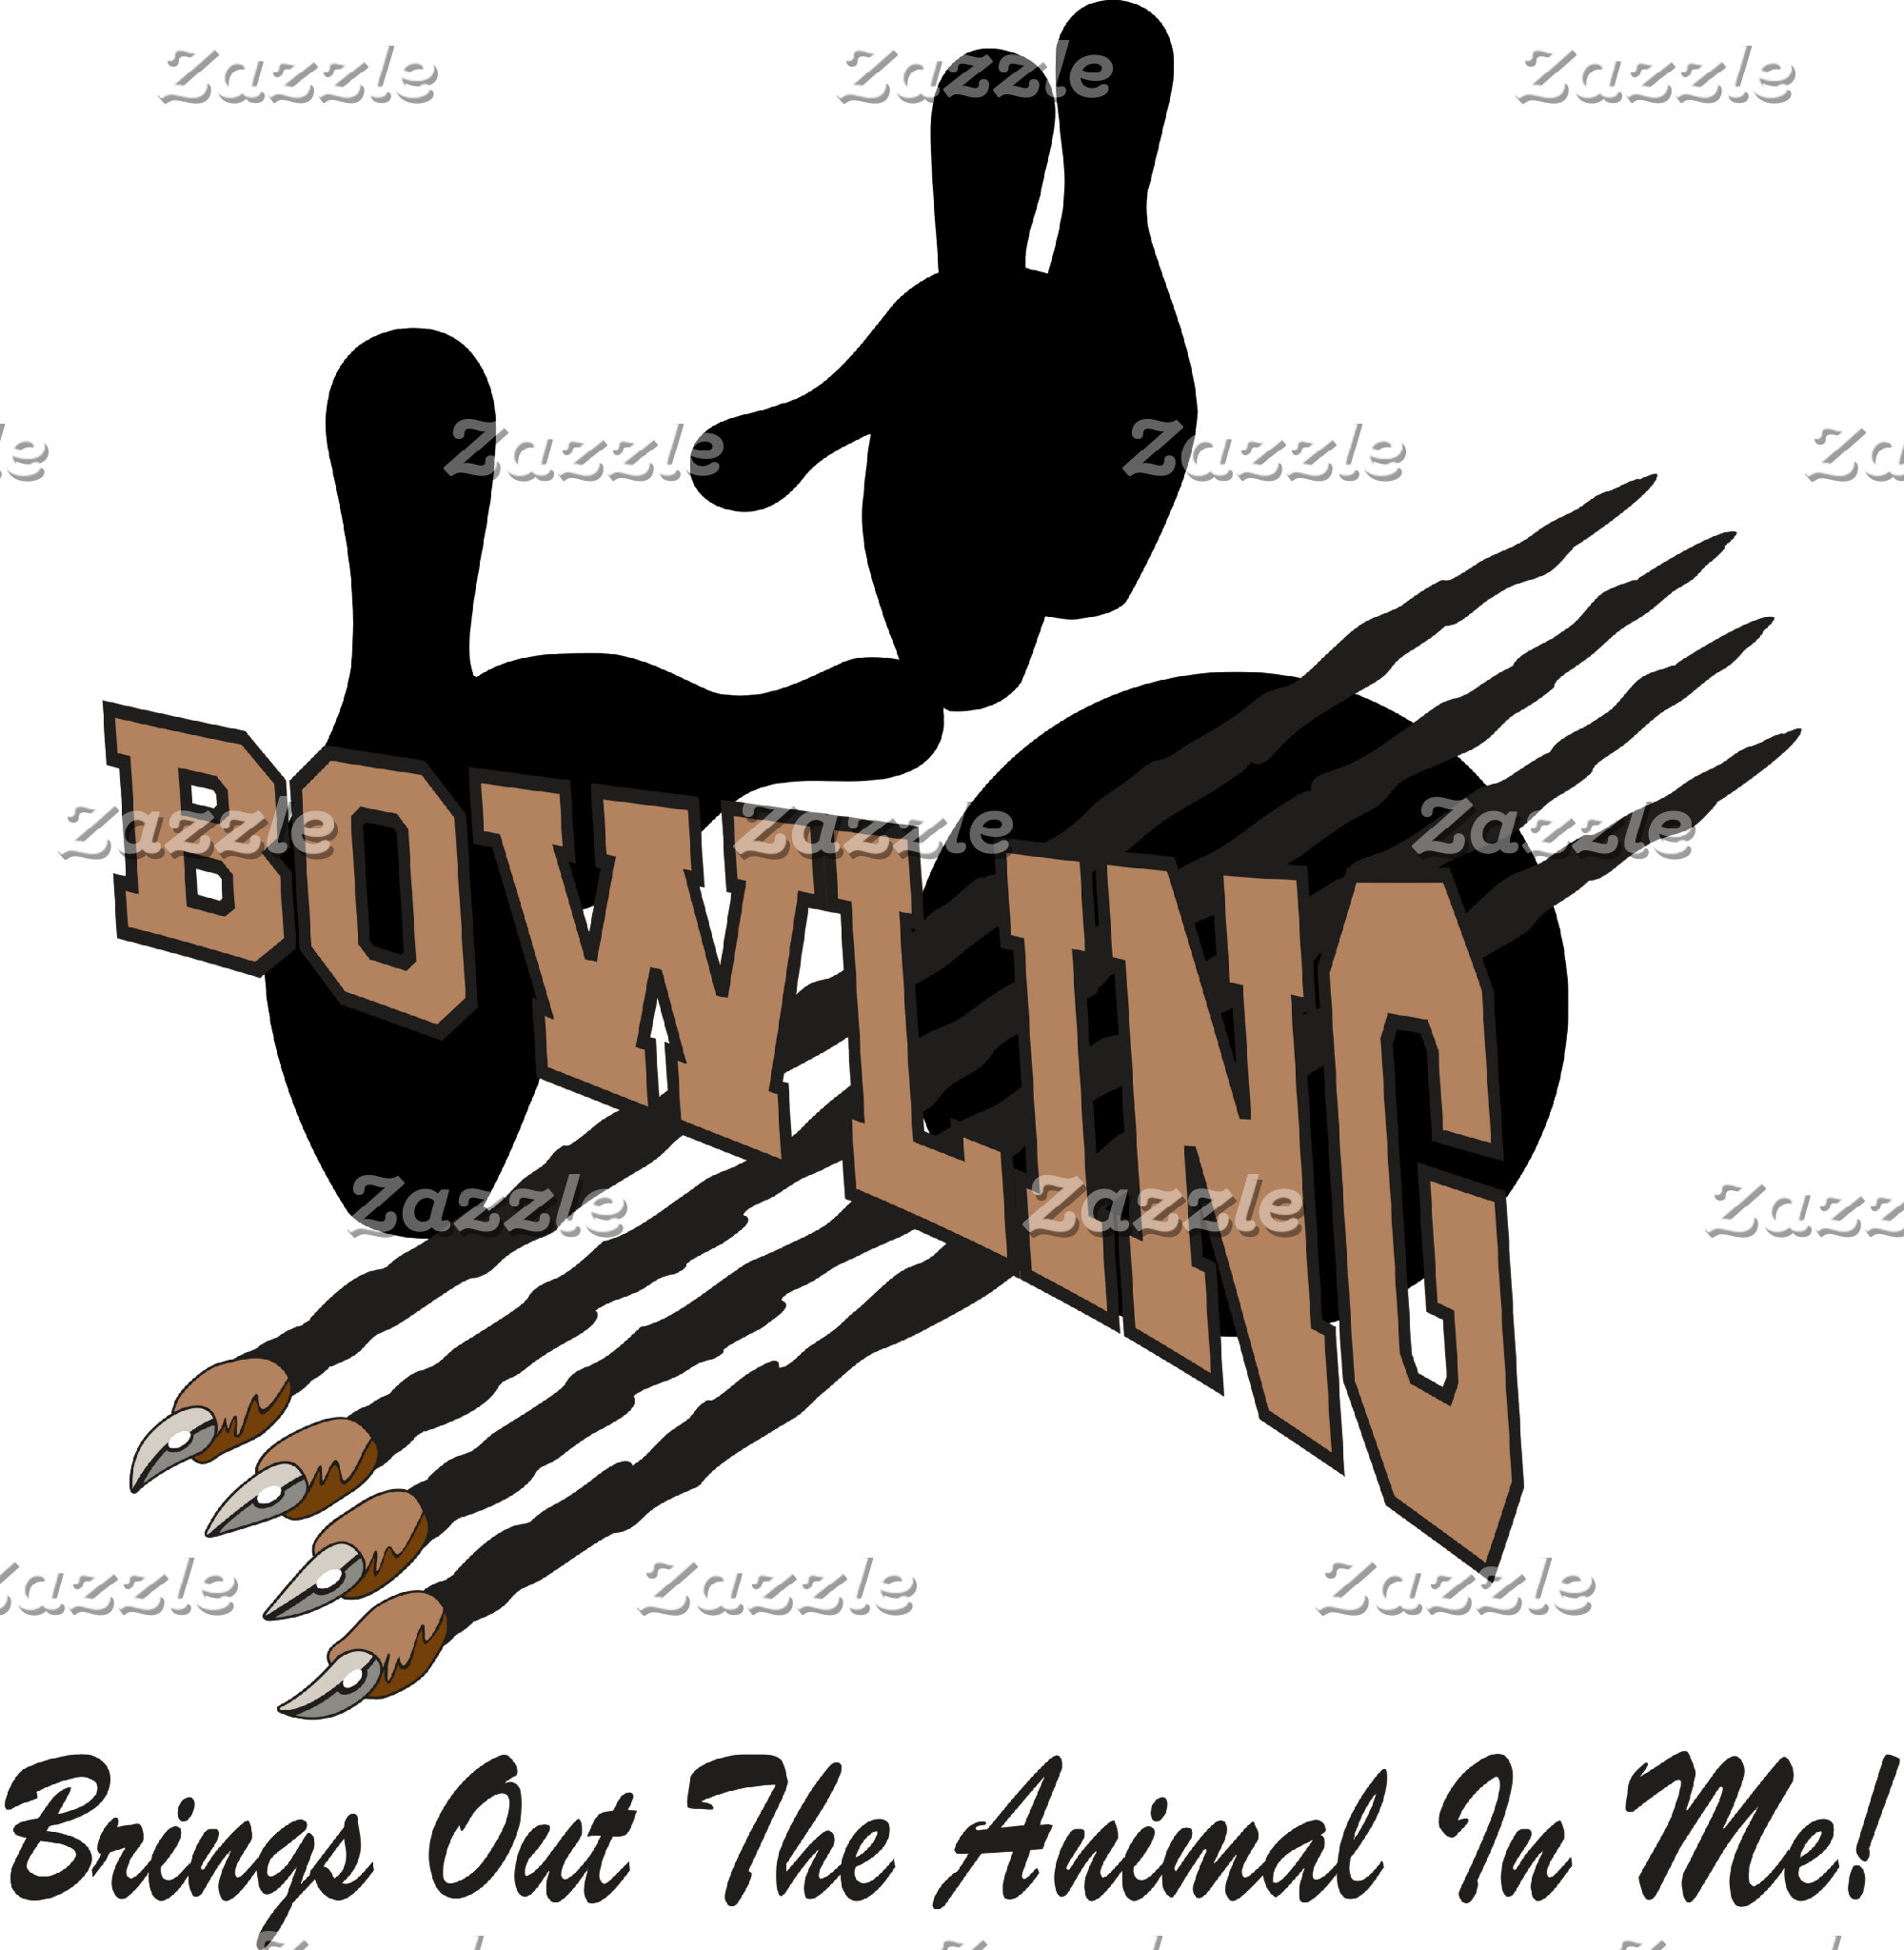 Bowling Brings Out The Animal In Me T-Shirt